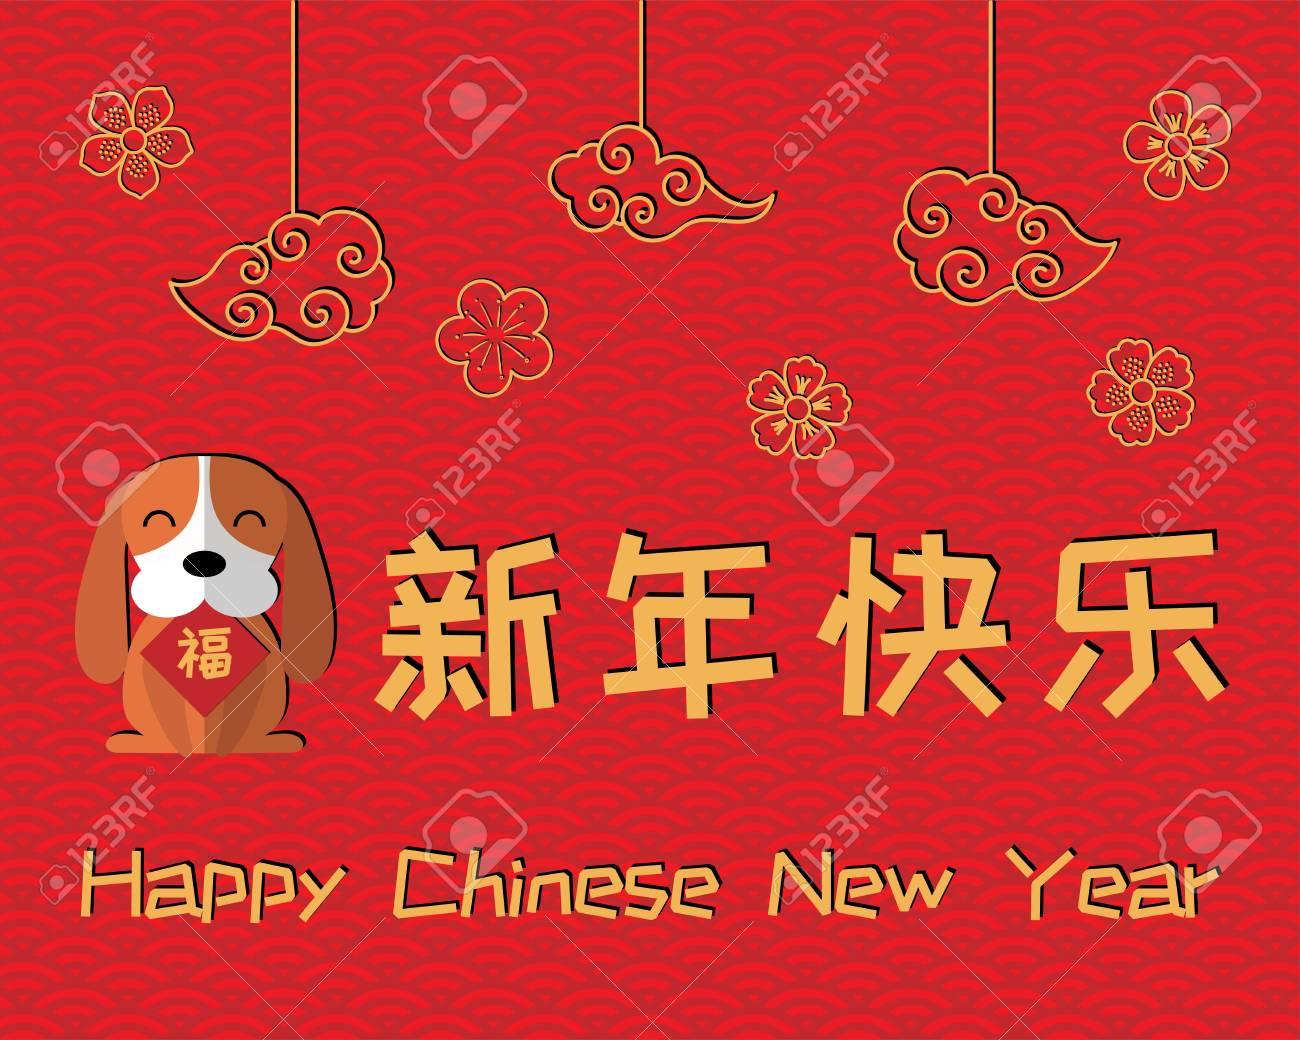 2018 chinese new year greeting card banner with cute funny dog 2018 chinese new year greeting card banner with cute funny dog holding card with character kristyandbryce Choice Image